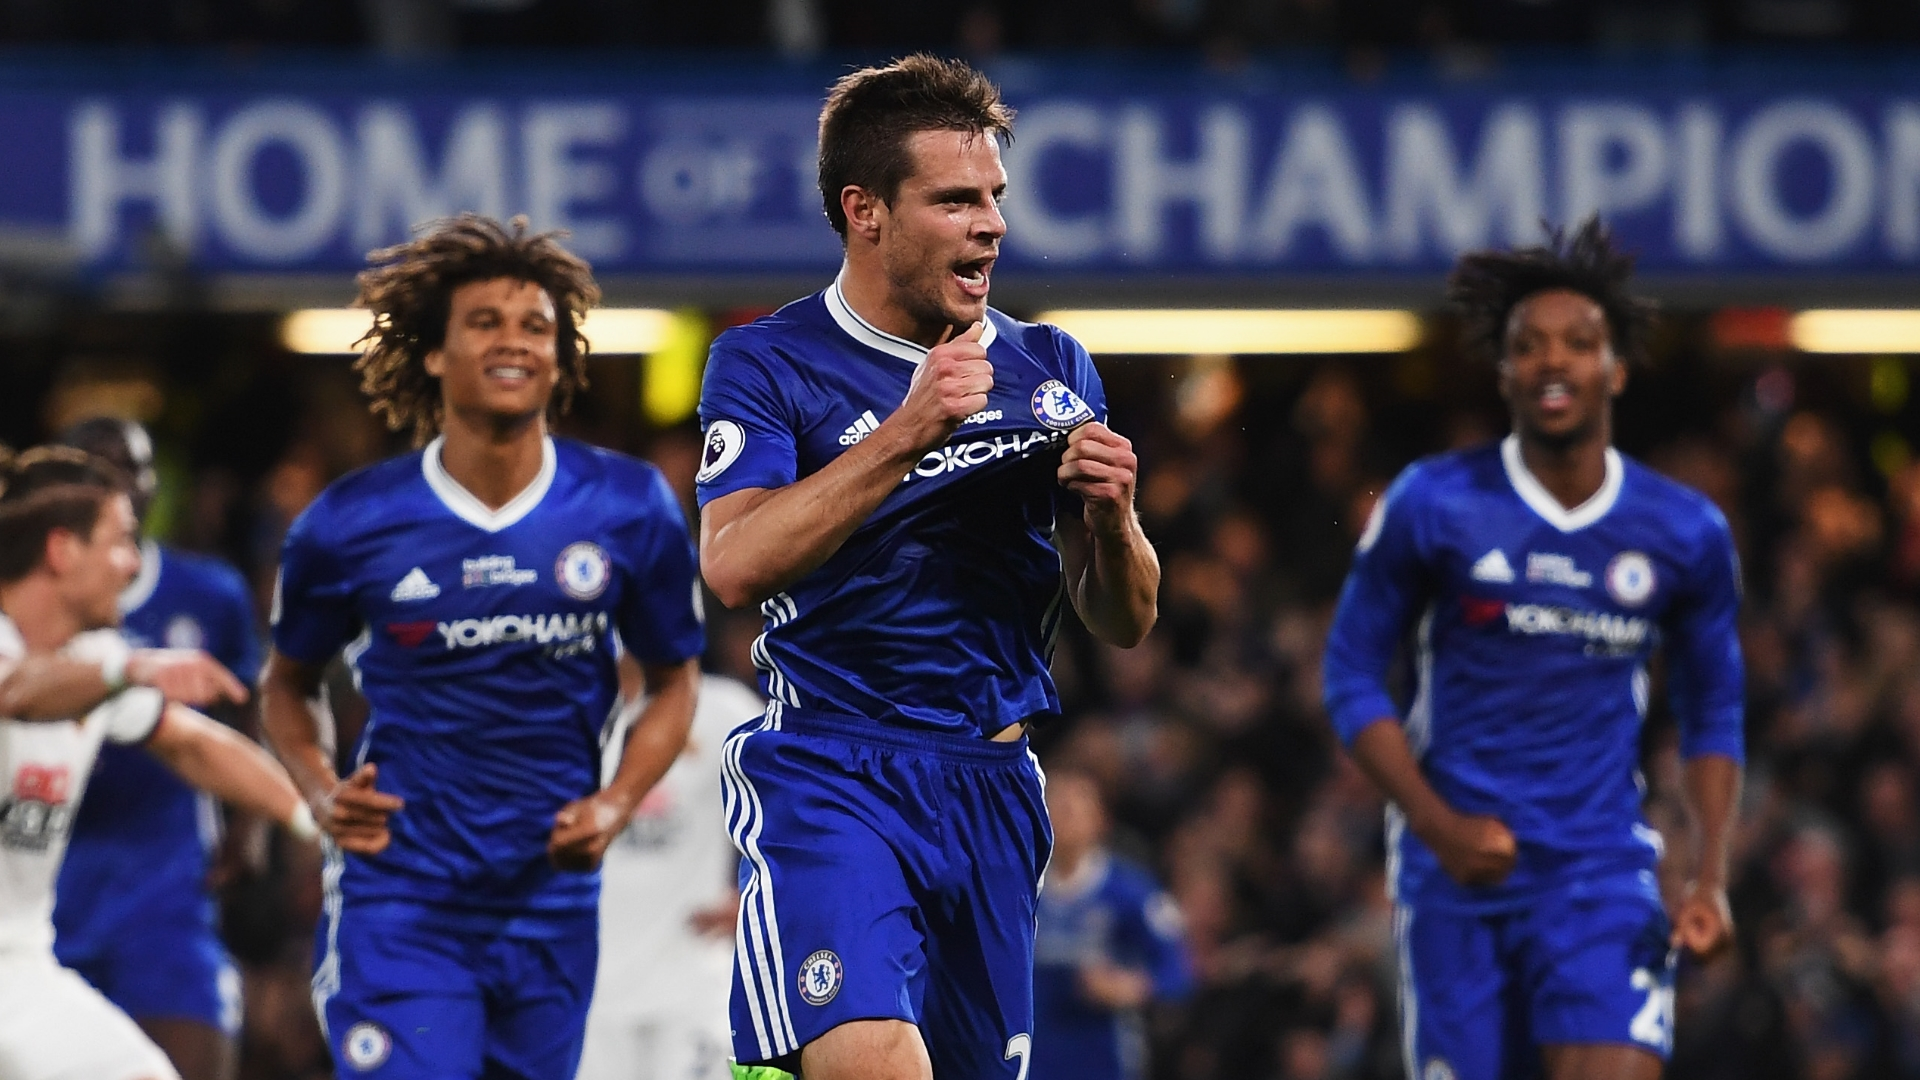 Antonio Conte Cesar Azpilicueta would be ready to play in goal if